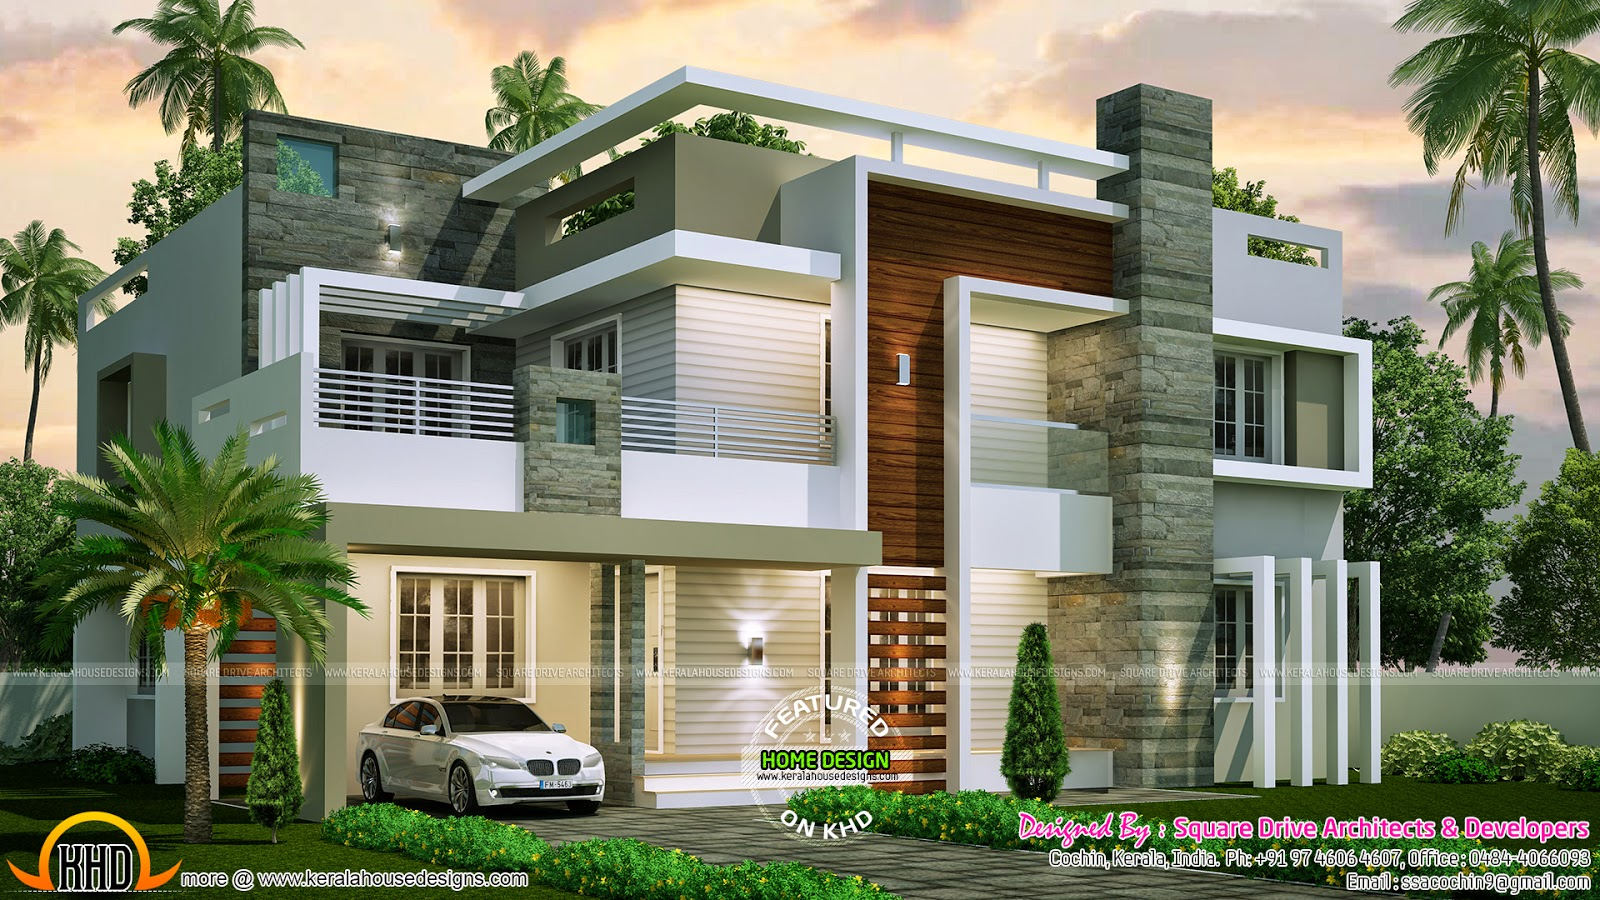 4 bedroom contemporary home design kerala home design for Contemporary house in kerala